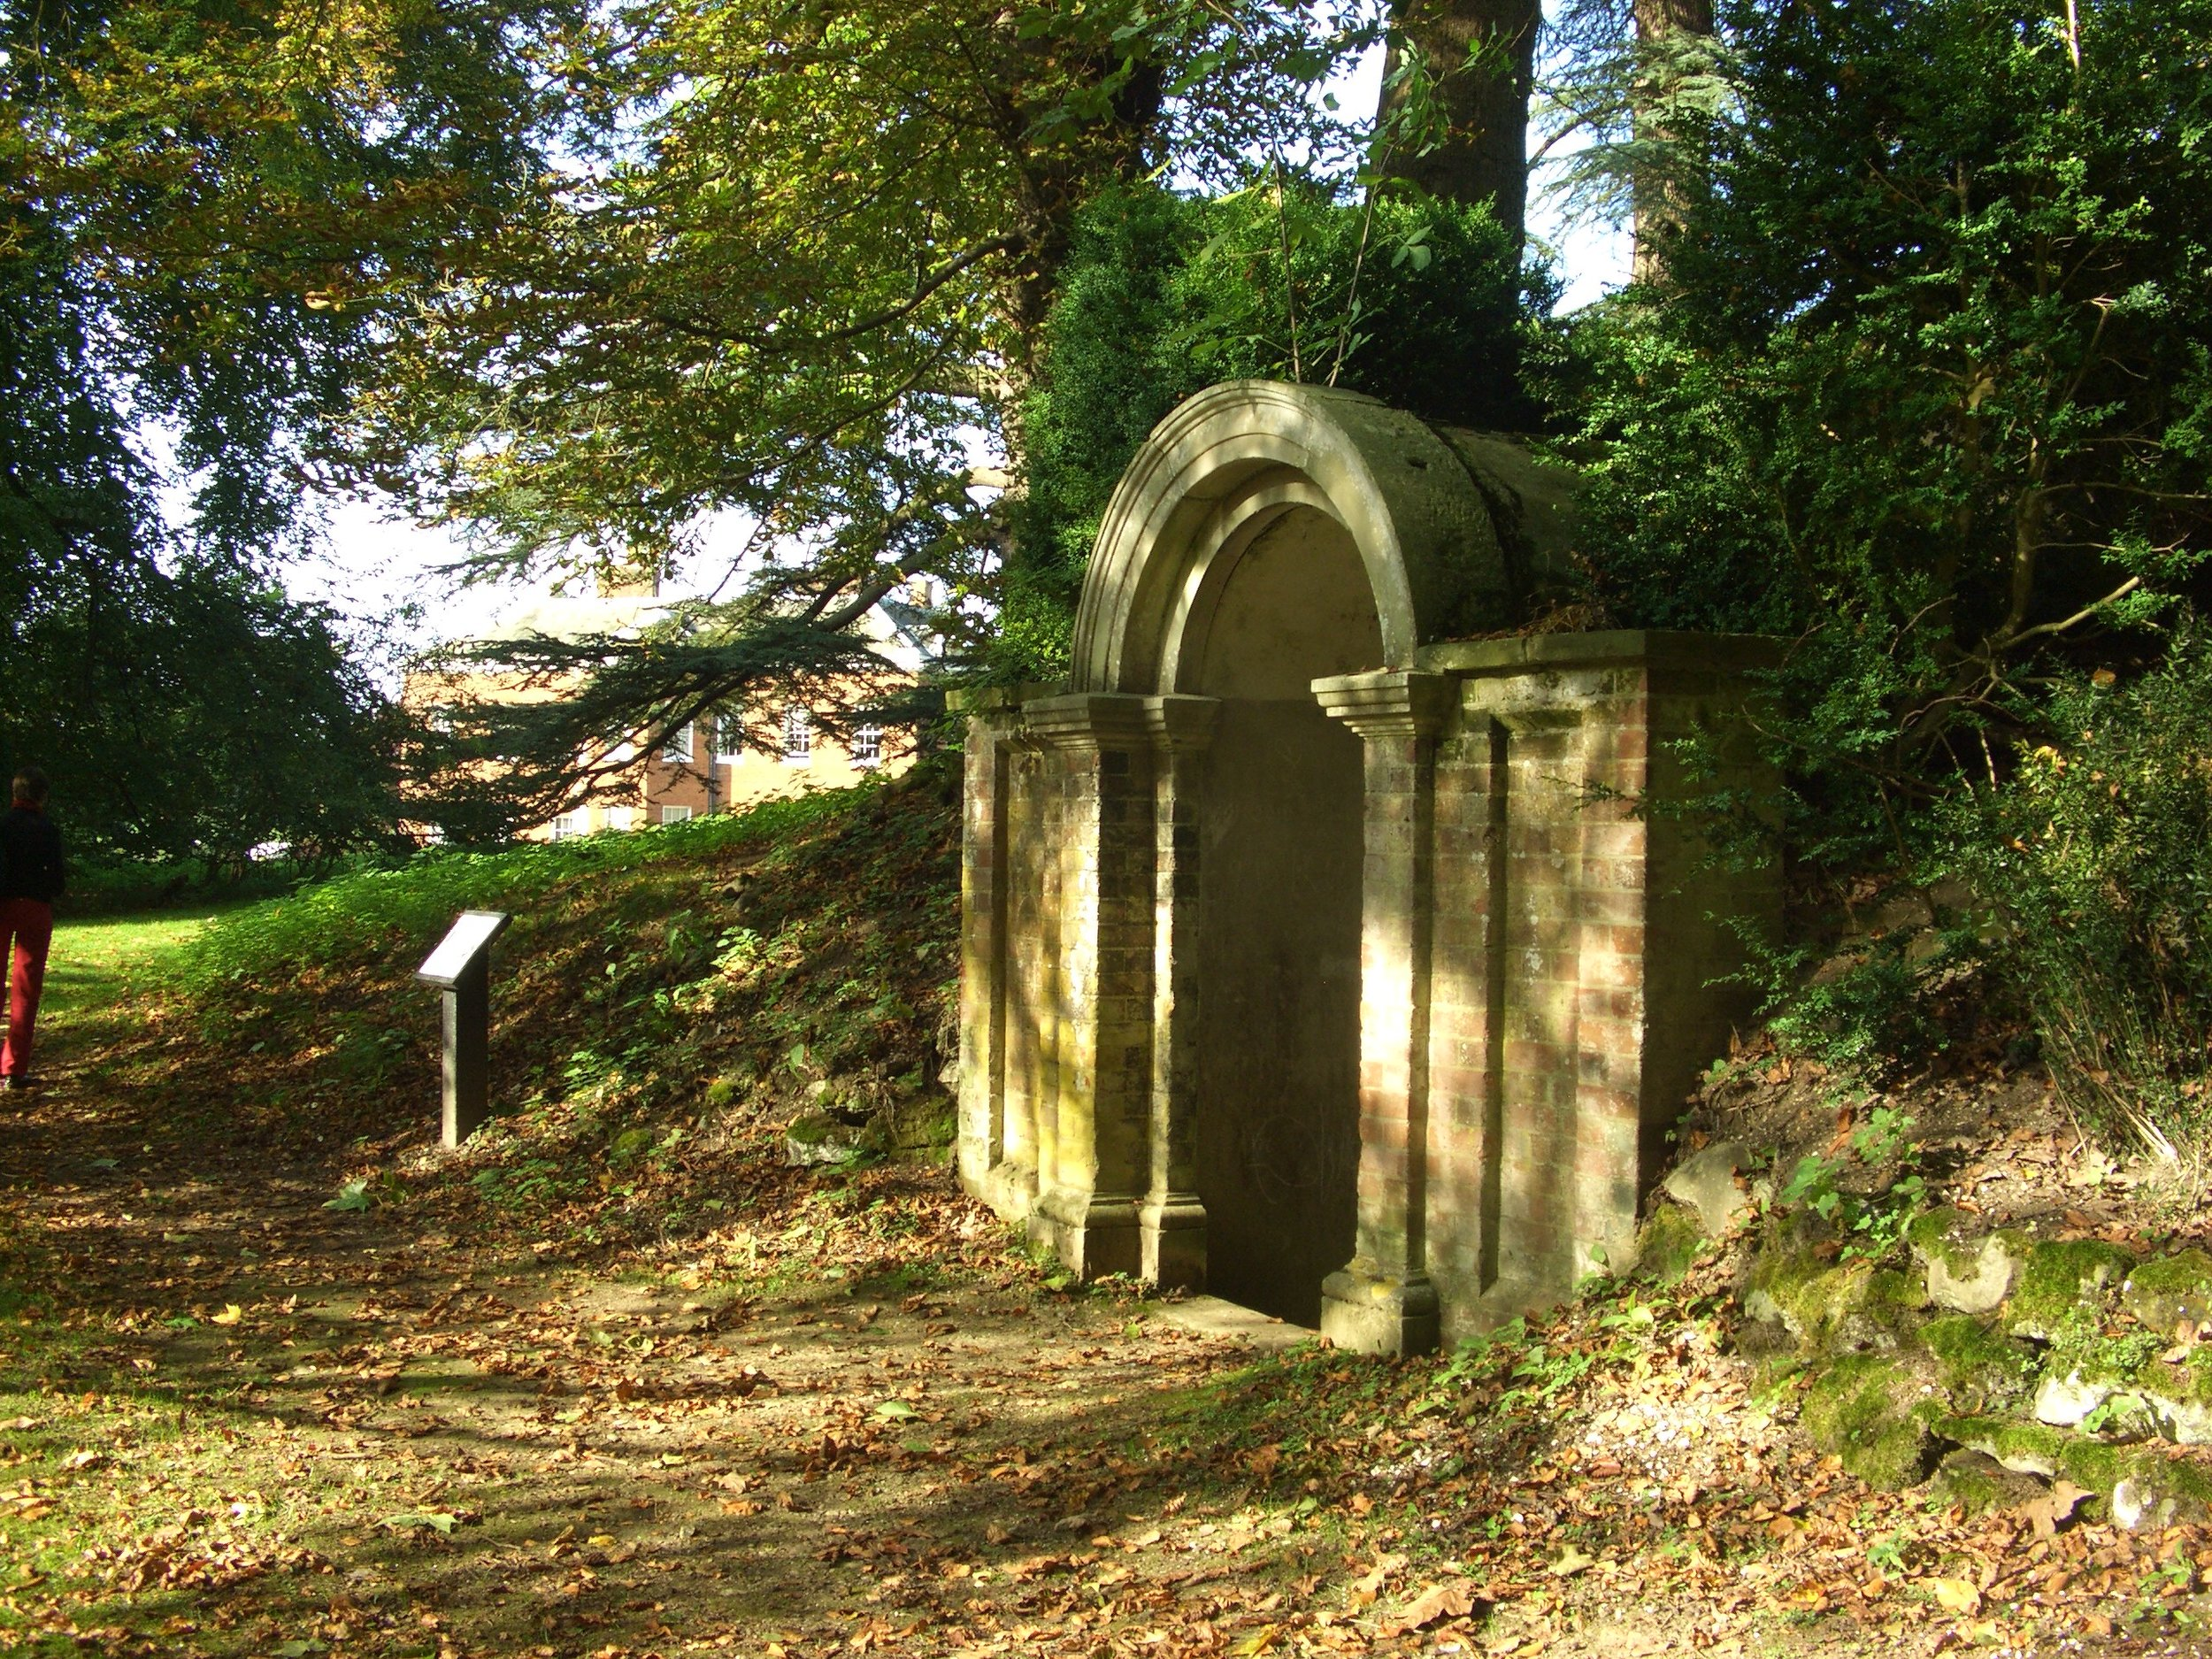 The ice house in the dell at Hatchlands in 2010